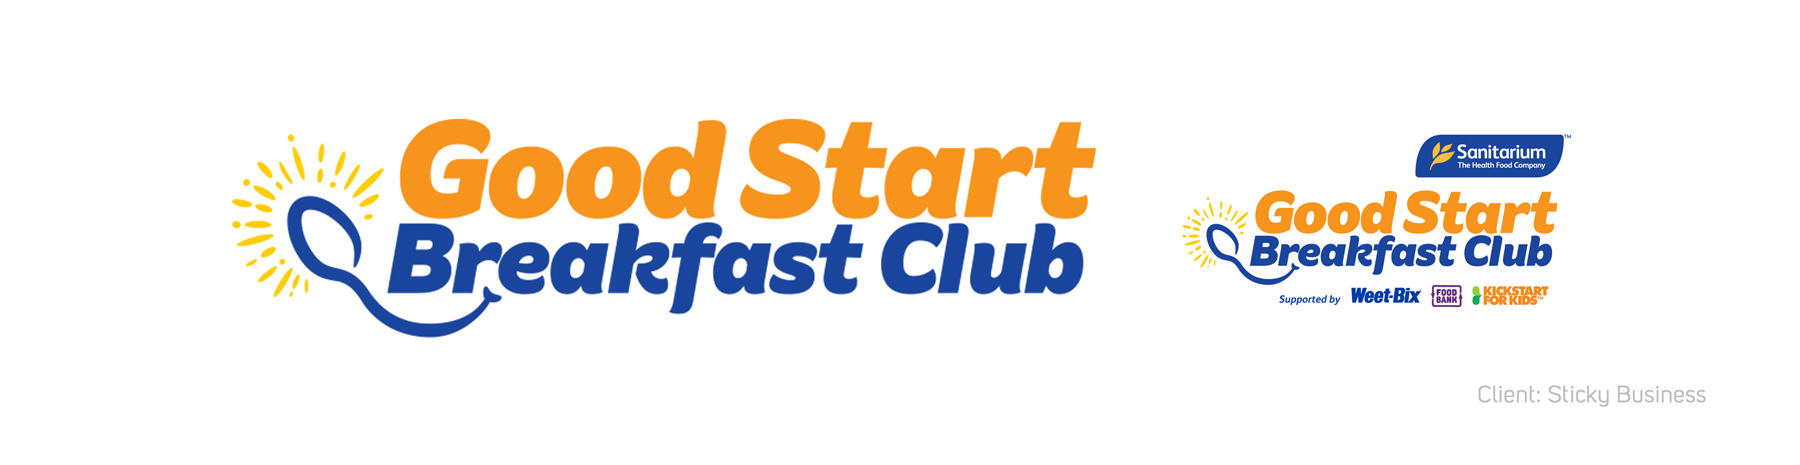 Sanitarium Good Start Breakfast Club logo Banner